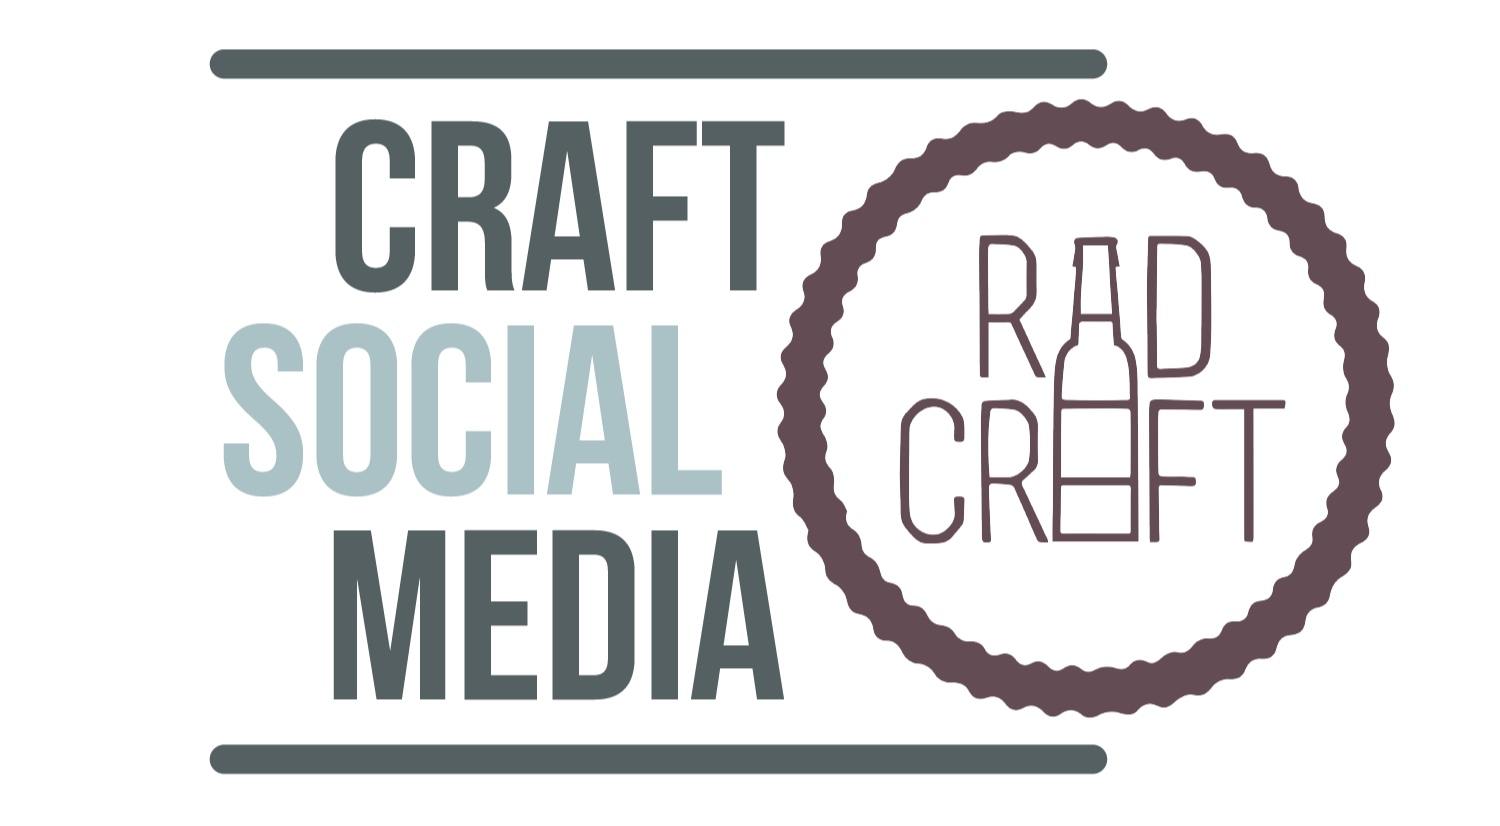 Social Media Support For Brewery Pros - Don't miss our first-ever #CraftSocialMedia education event for craft brewery marketing professionals. Meet beer-centric social influencers, get quick tips for managing your social media on the go, and more! Keynote & Speakers to be announced soon.Join us on Friday, February 22 from 9:30am to 2pm at the Yak &Yeti Events Center. Tickets include coffee, beer, and lunch.Space is limited. Reserve now!